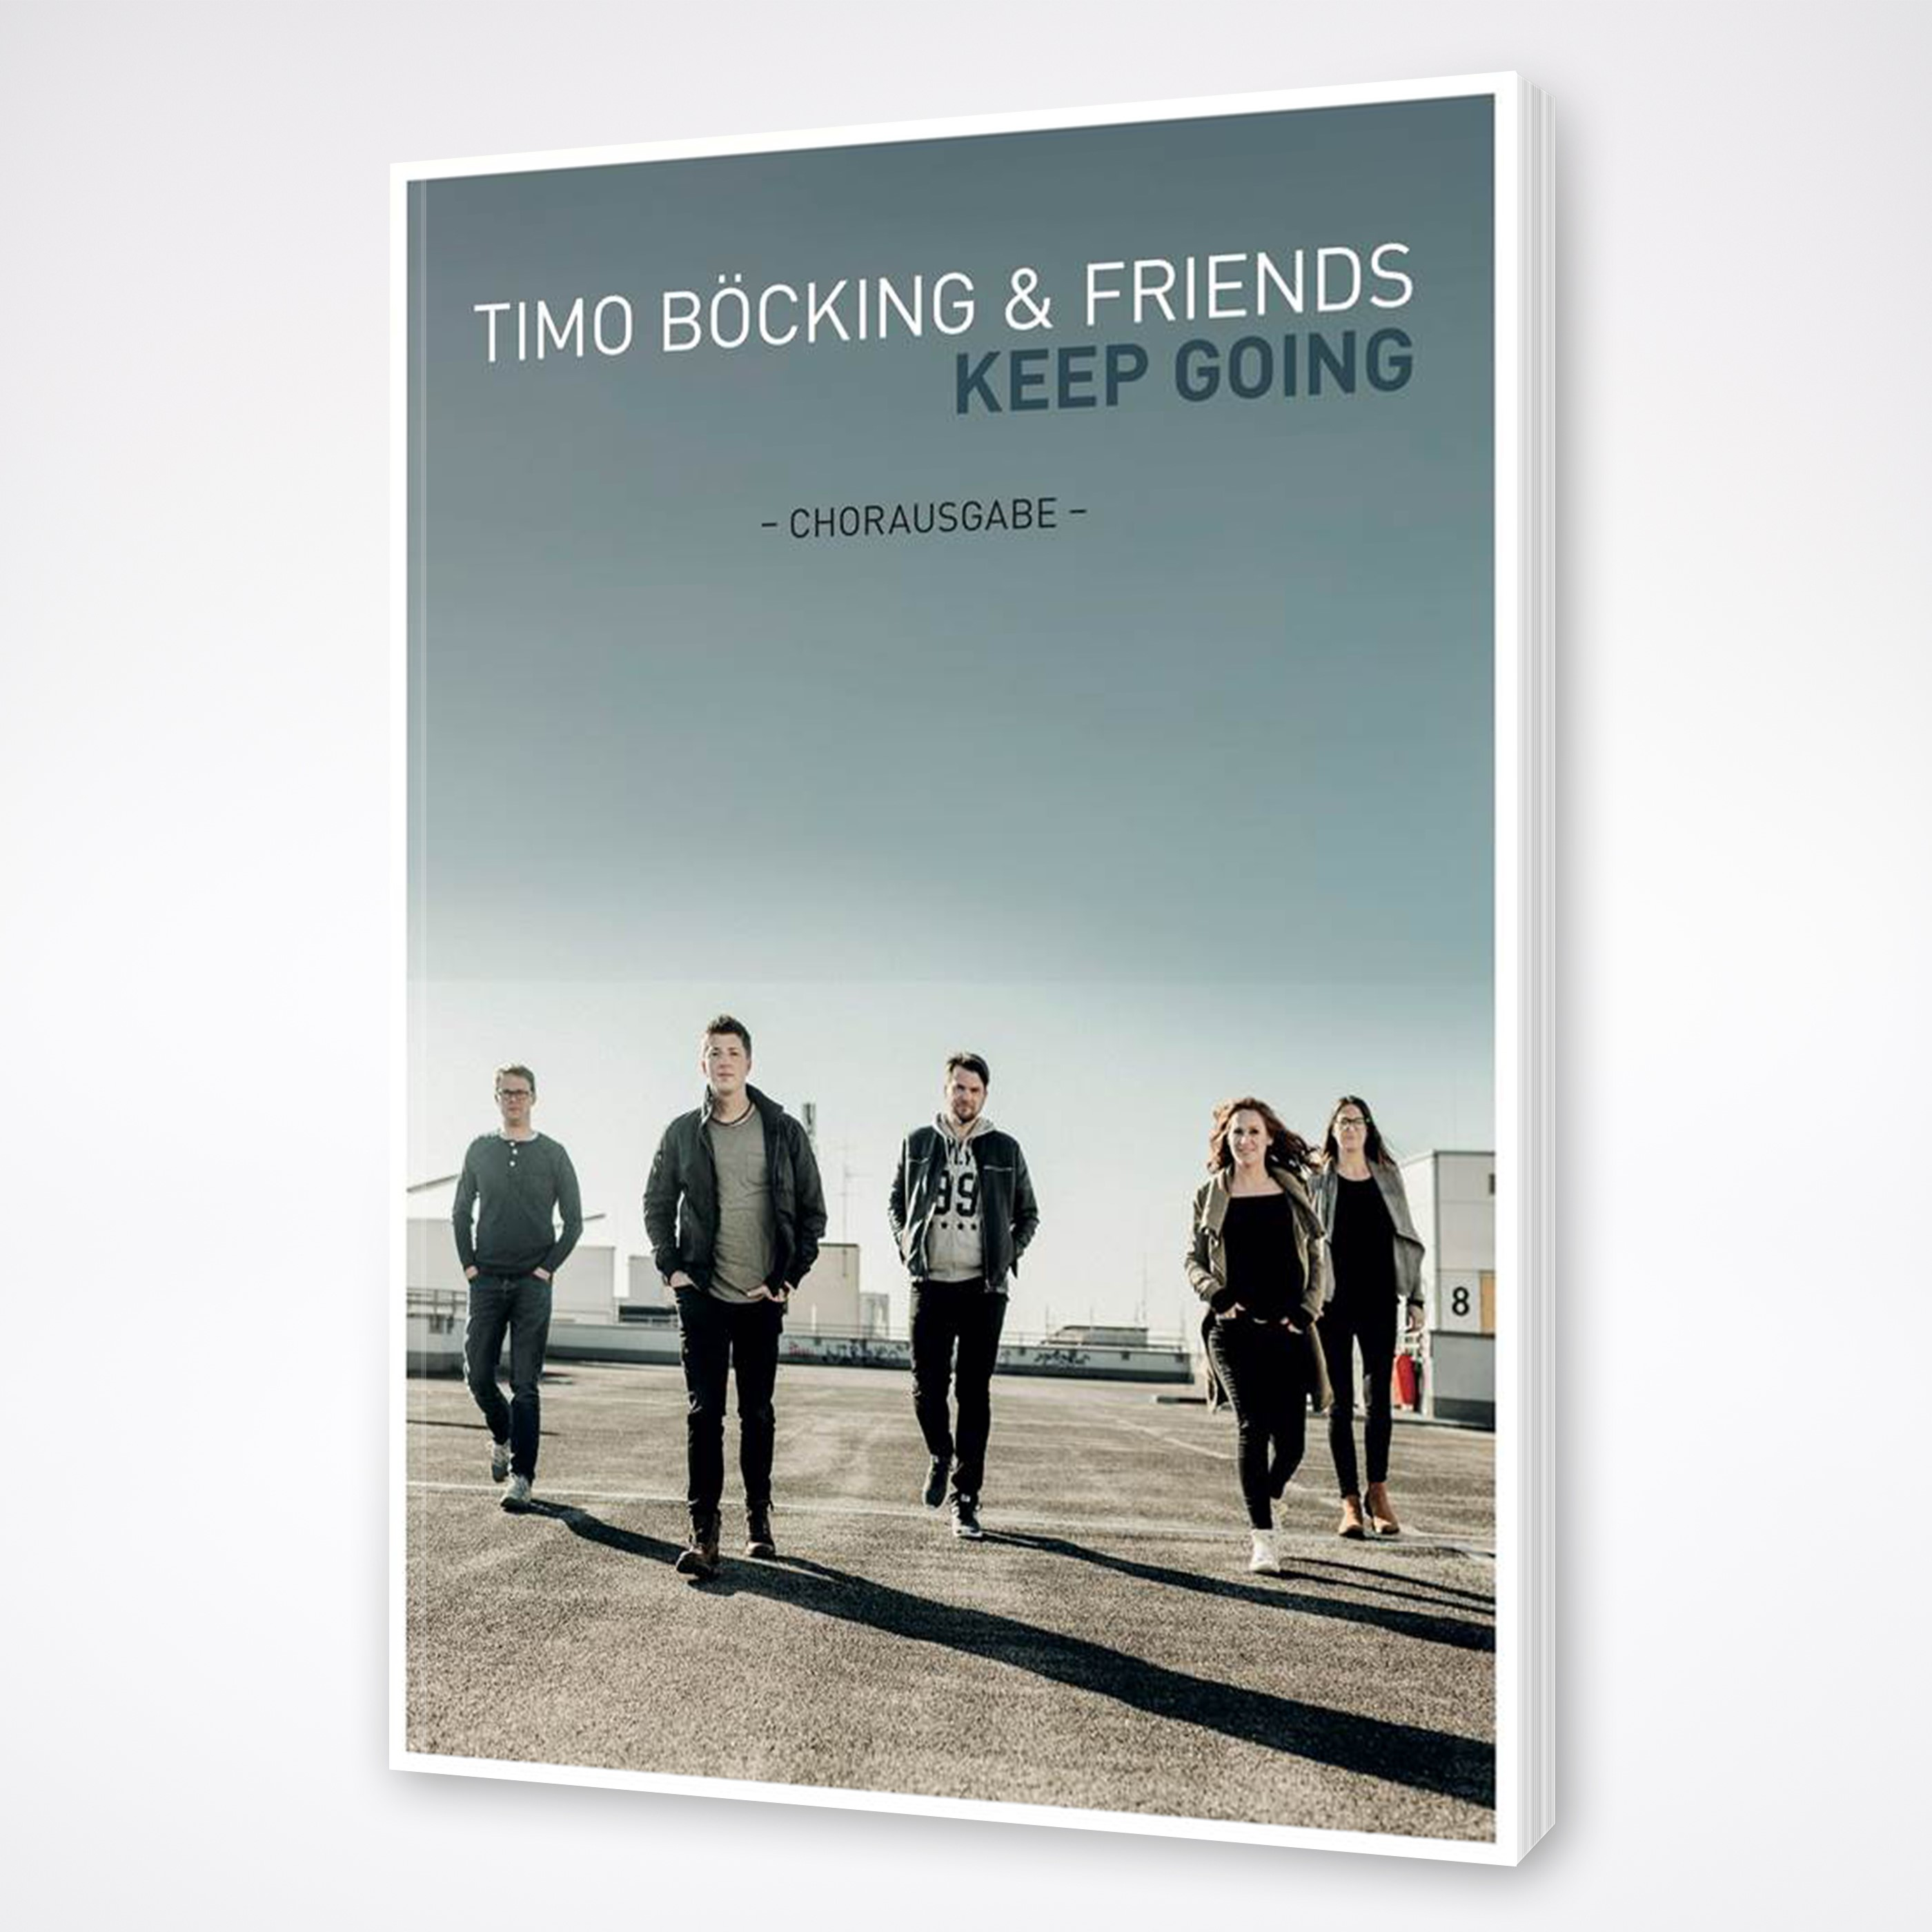 Timo Böcking & Friends - Keep going Songbook